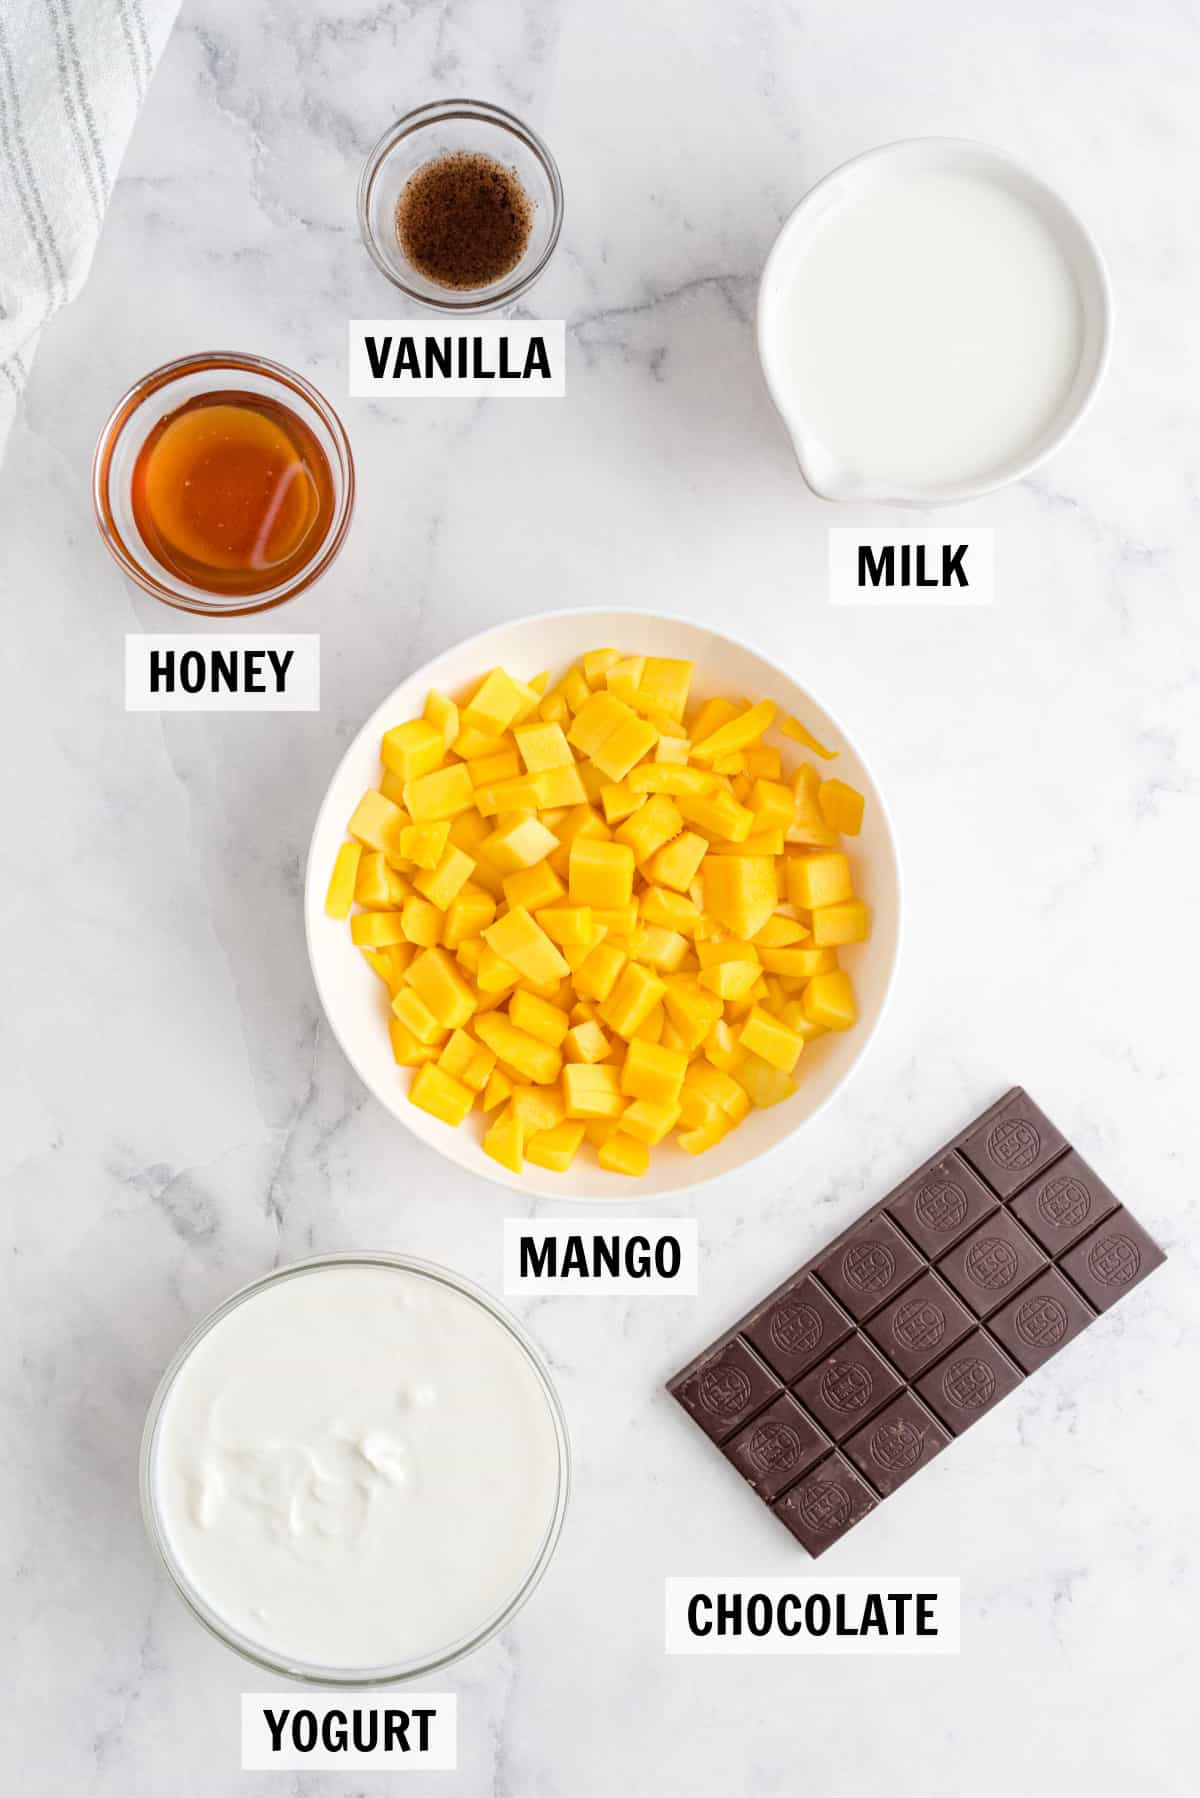 all of the ingredients for mango popsicles on a white countertop